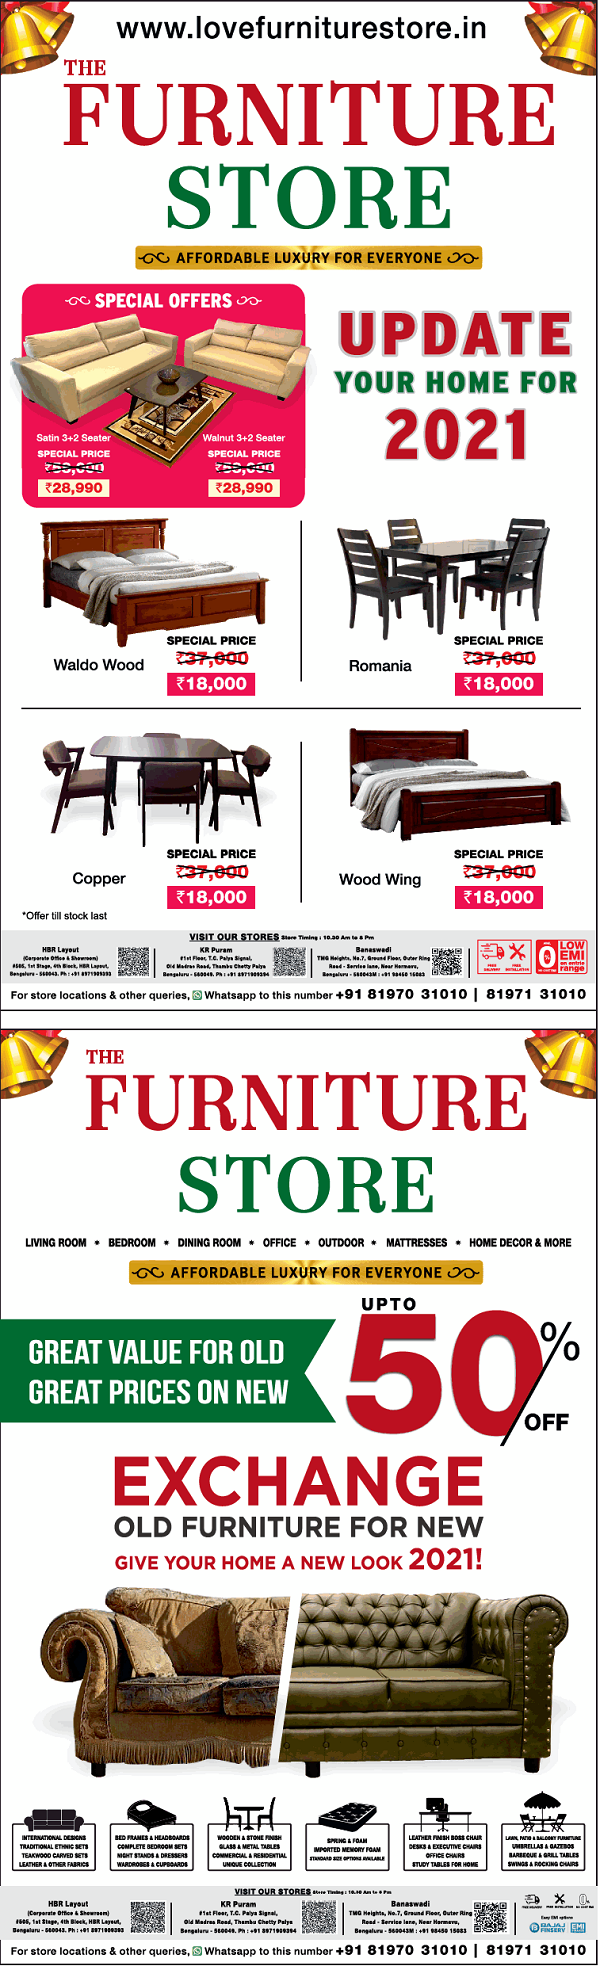 The Furniture Store offers India